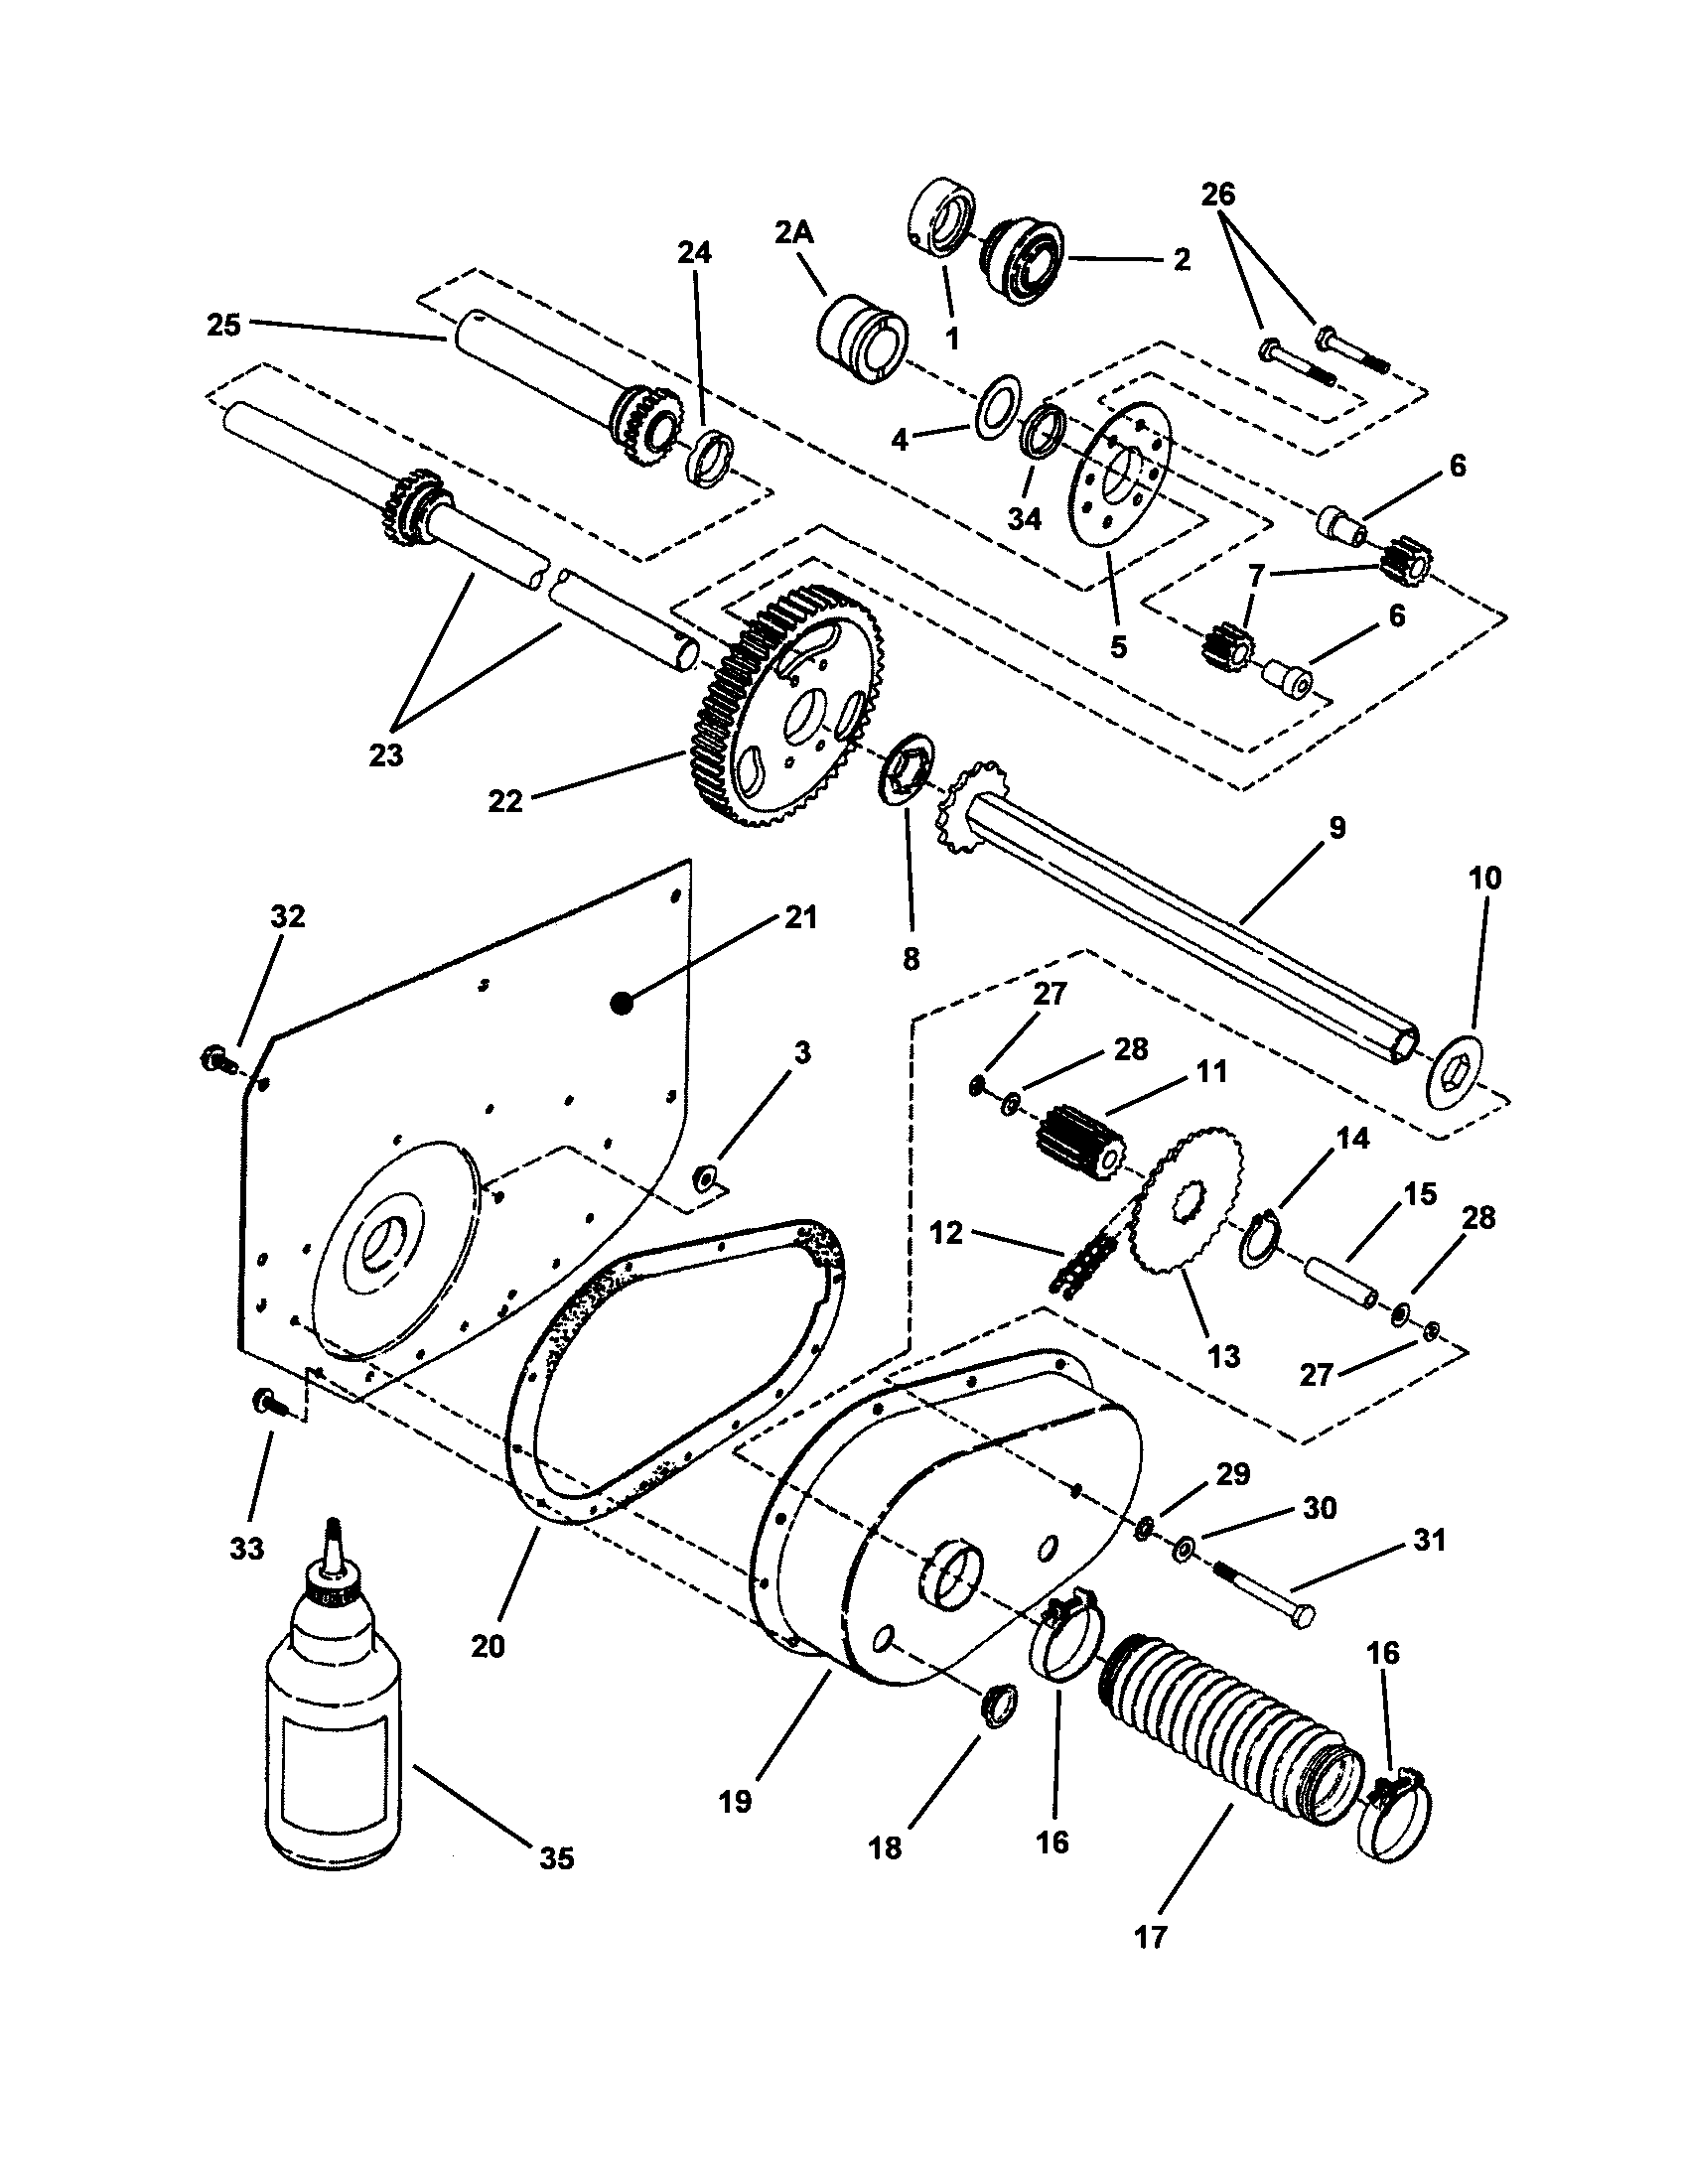 hight resolution of snapper 301222be differential r h fender diagram